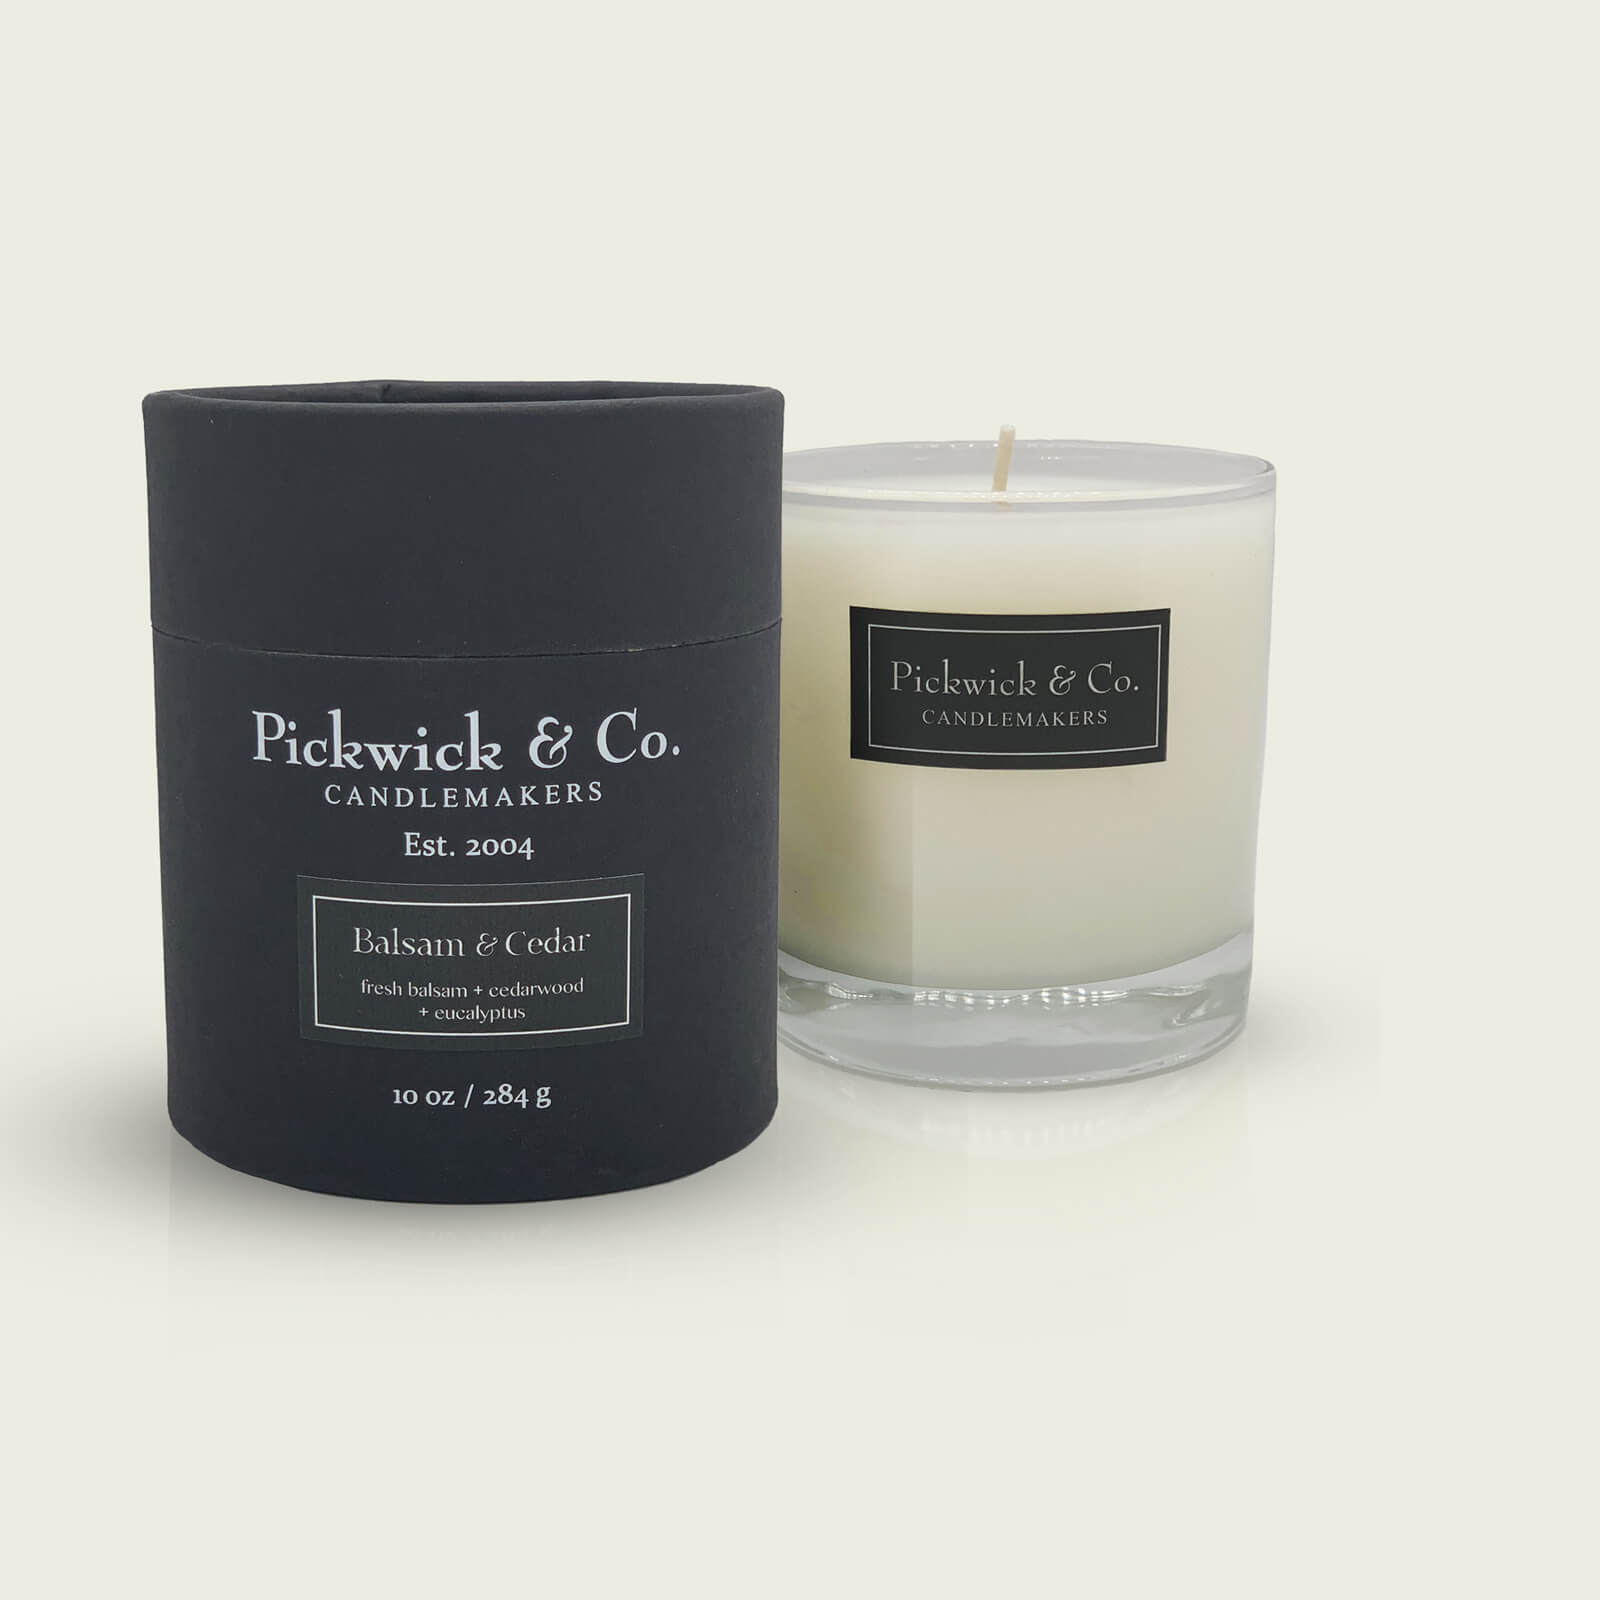 A winter candle titled Balsam and Cedar from Pickwick & Co. Candlemakers